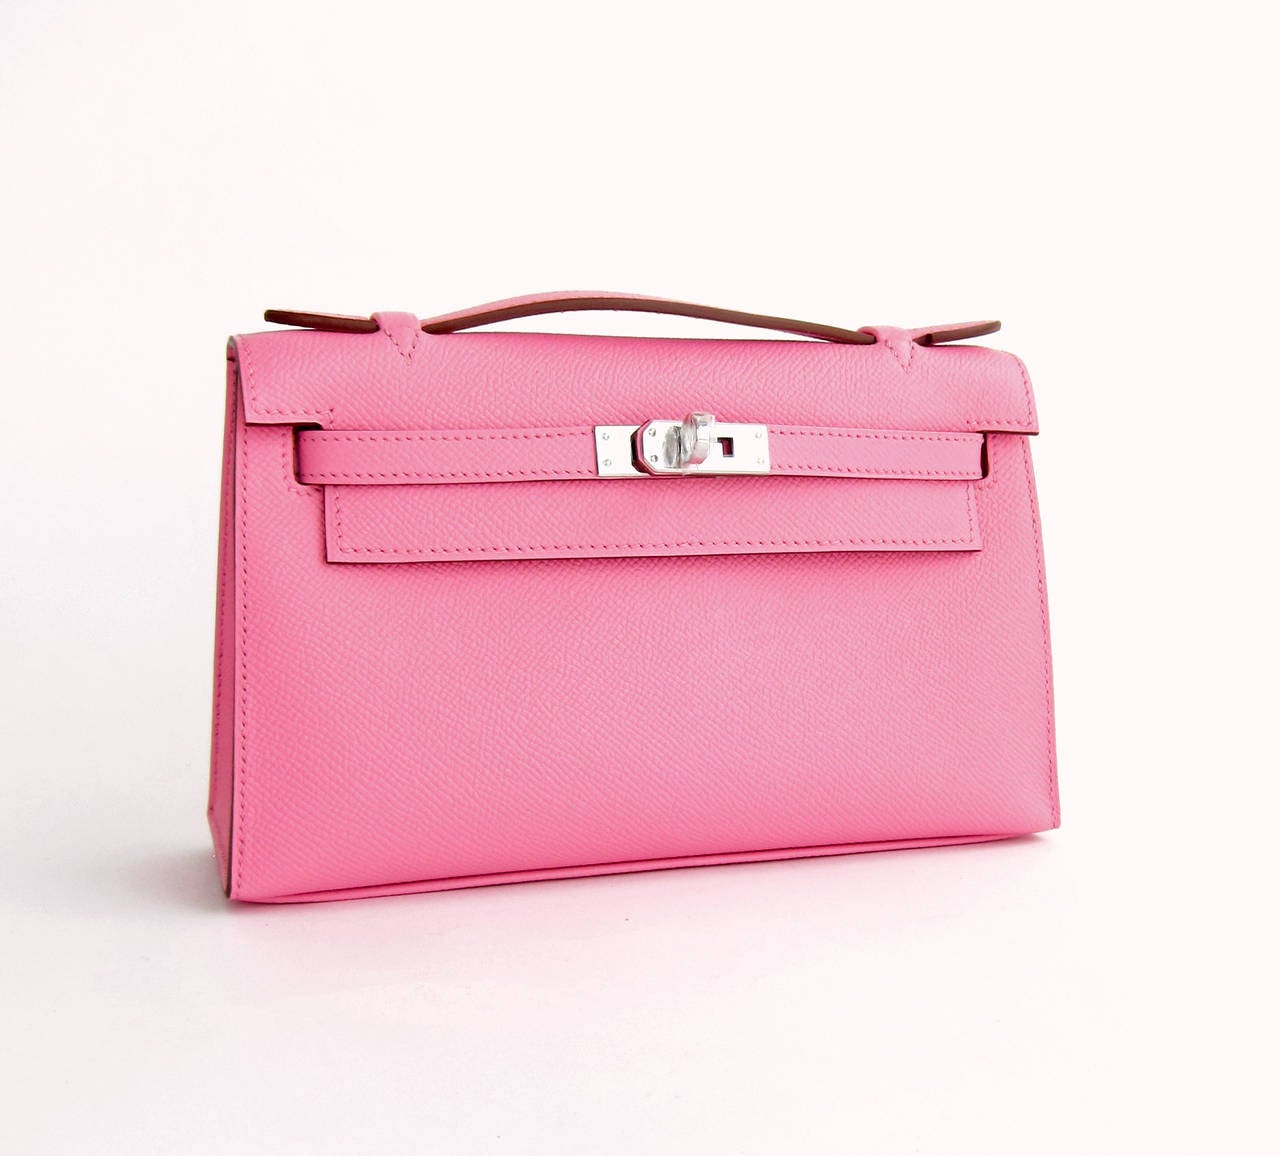 Hermes Rose Confetti Epsom Kelly Pochette Bag Love  Brand New in Box -T stamp Coming full set with Hermes sleeper, box and ribbon Beyond precious Kelly Pochette is so very rare and especially so in cult favorite Rose Confetti Epsom Really the